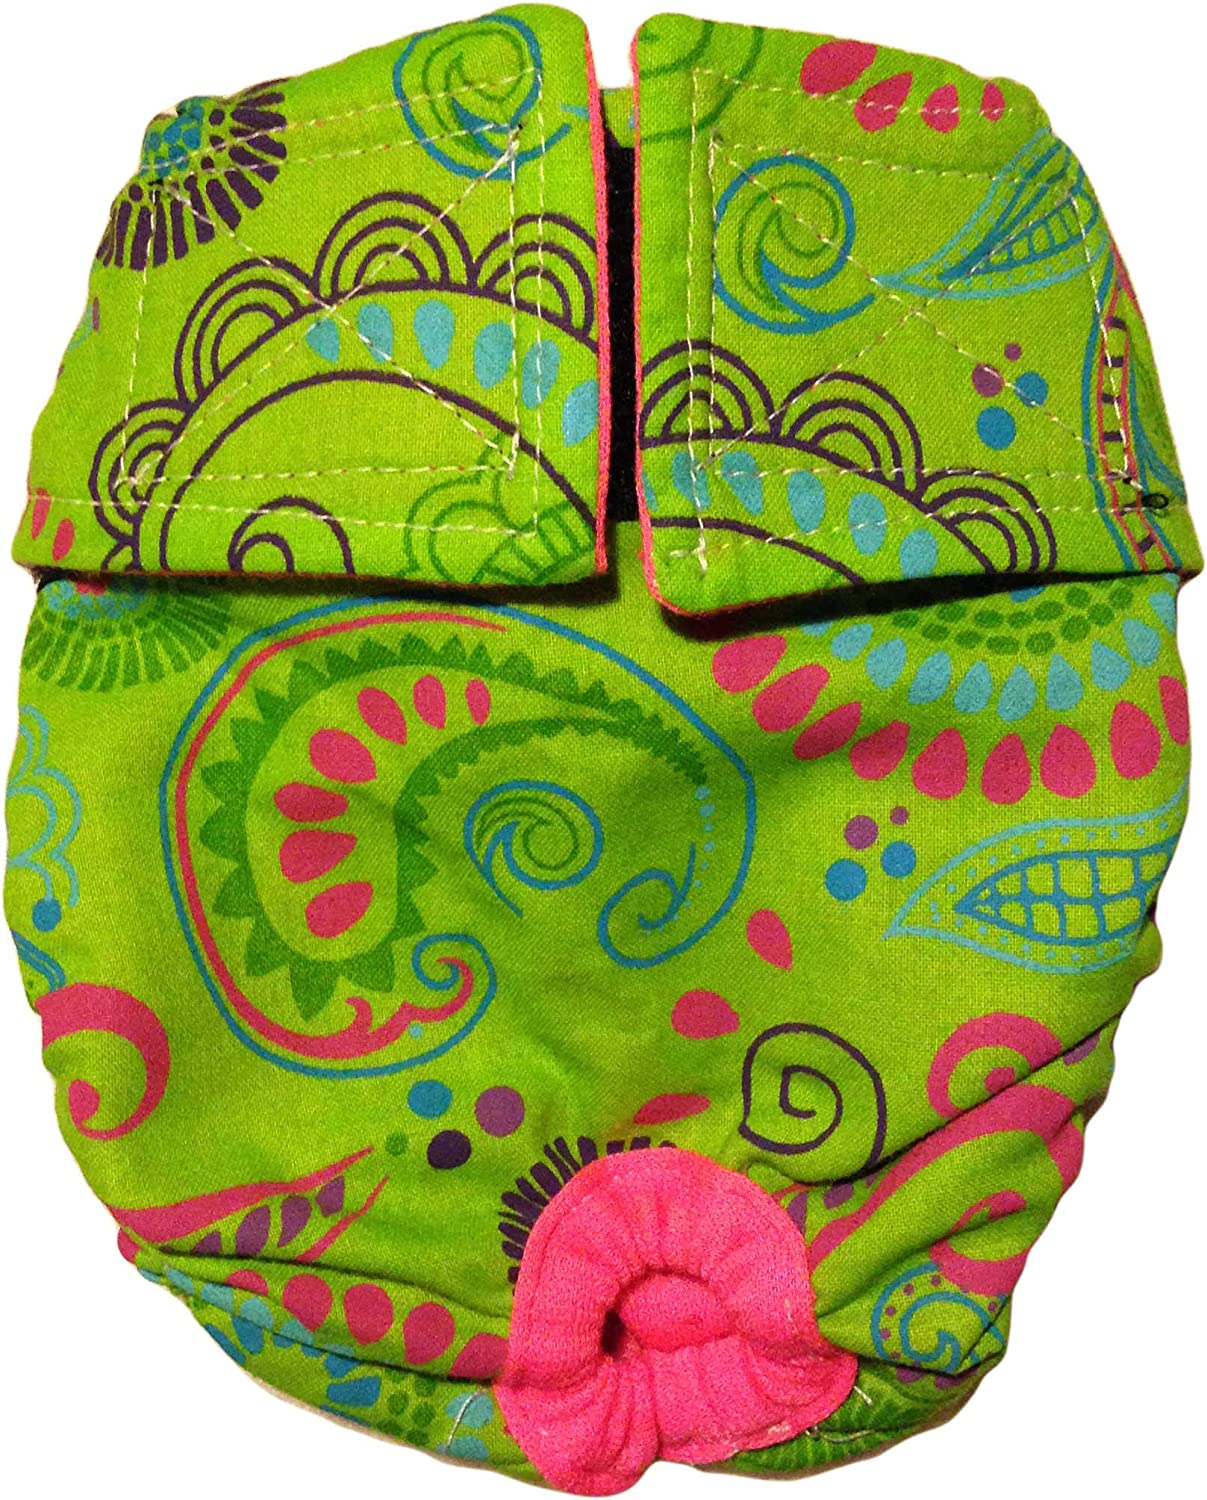 Barkerwear Dog Diapers - Made in Oklahoma Max 46% OFF City Mall Washable Lime Paisley USA